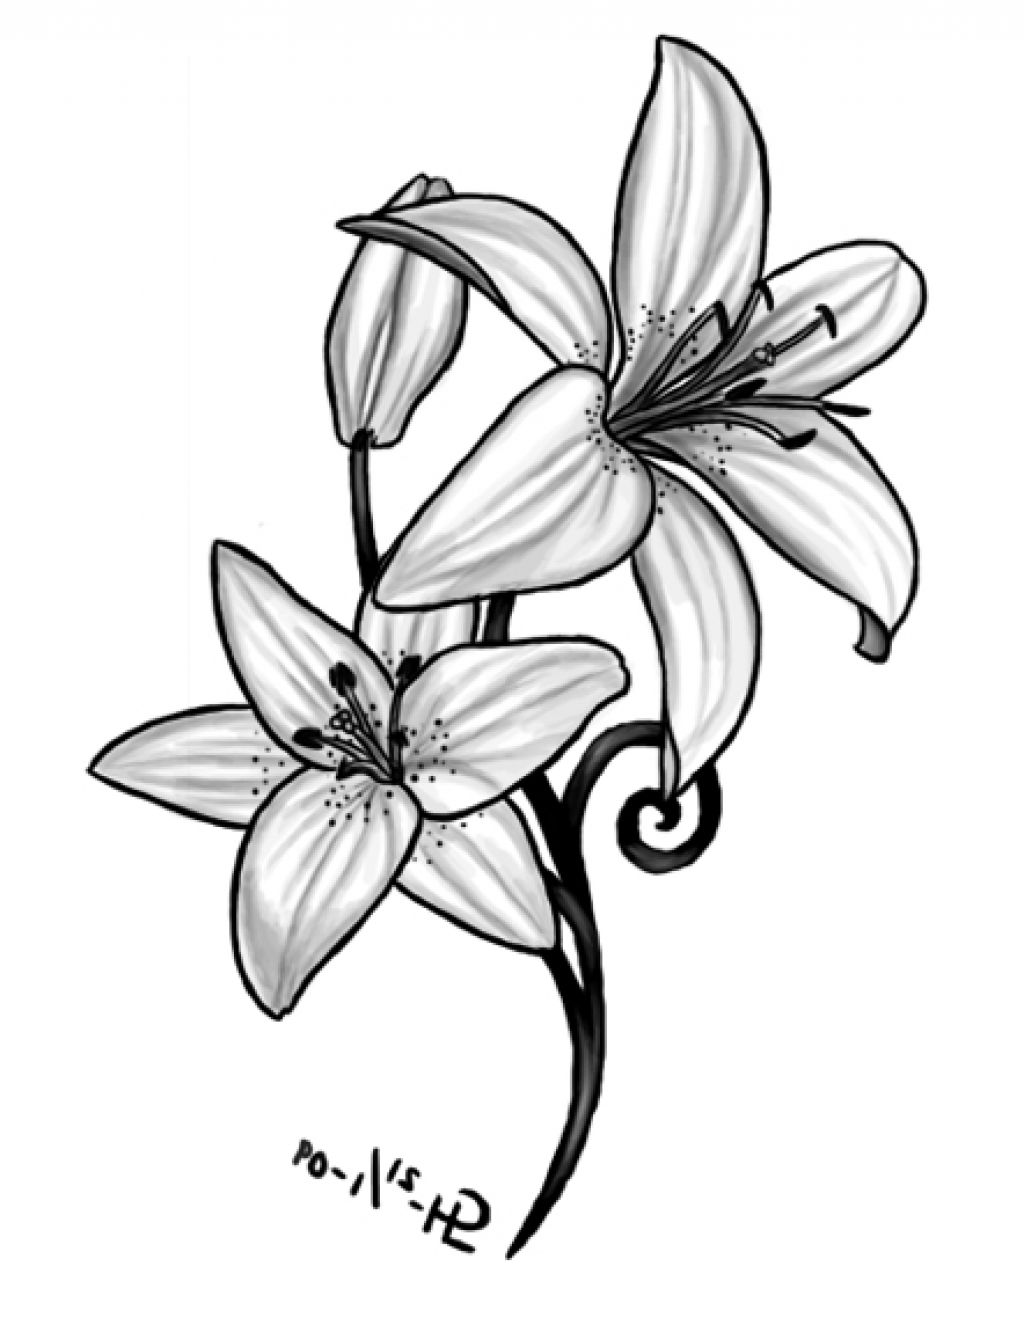 It's just a photo of Comprehensive Tiger Lily Flower Drawing